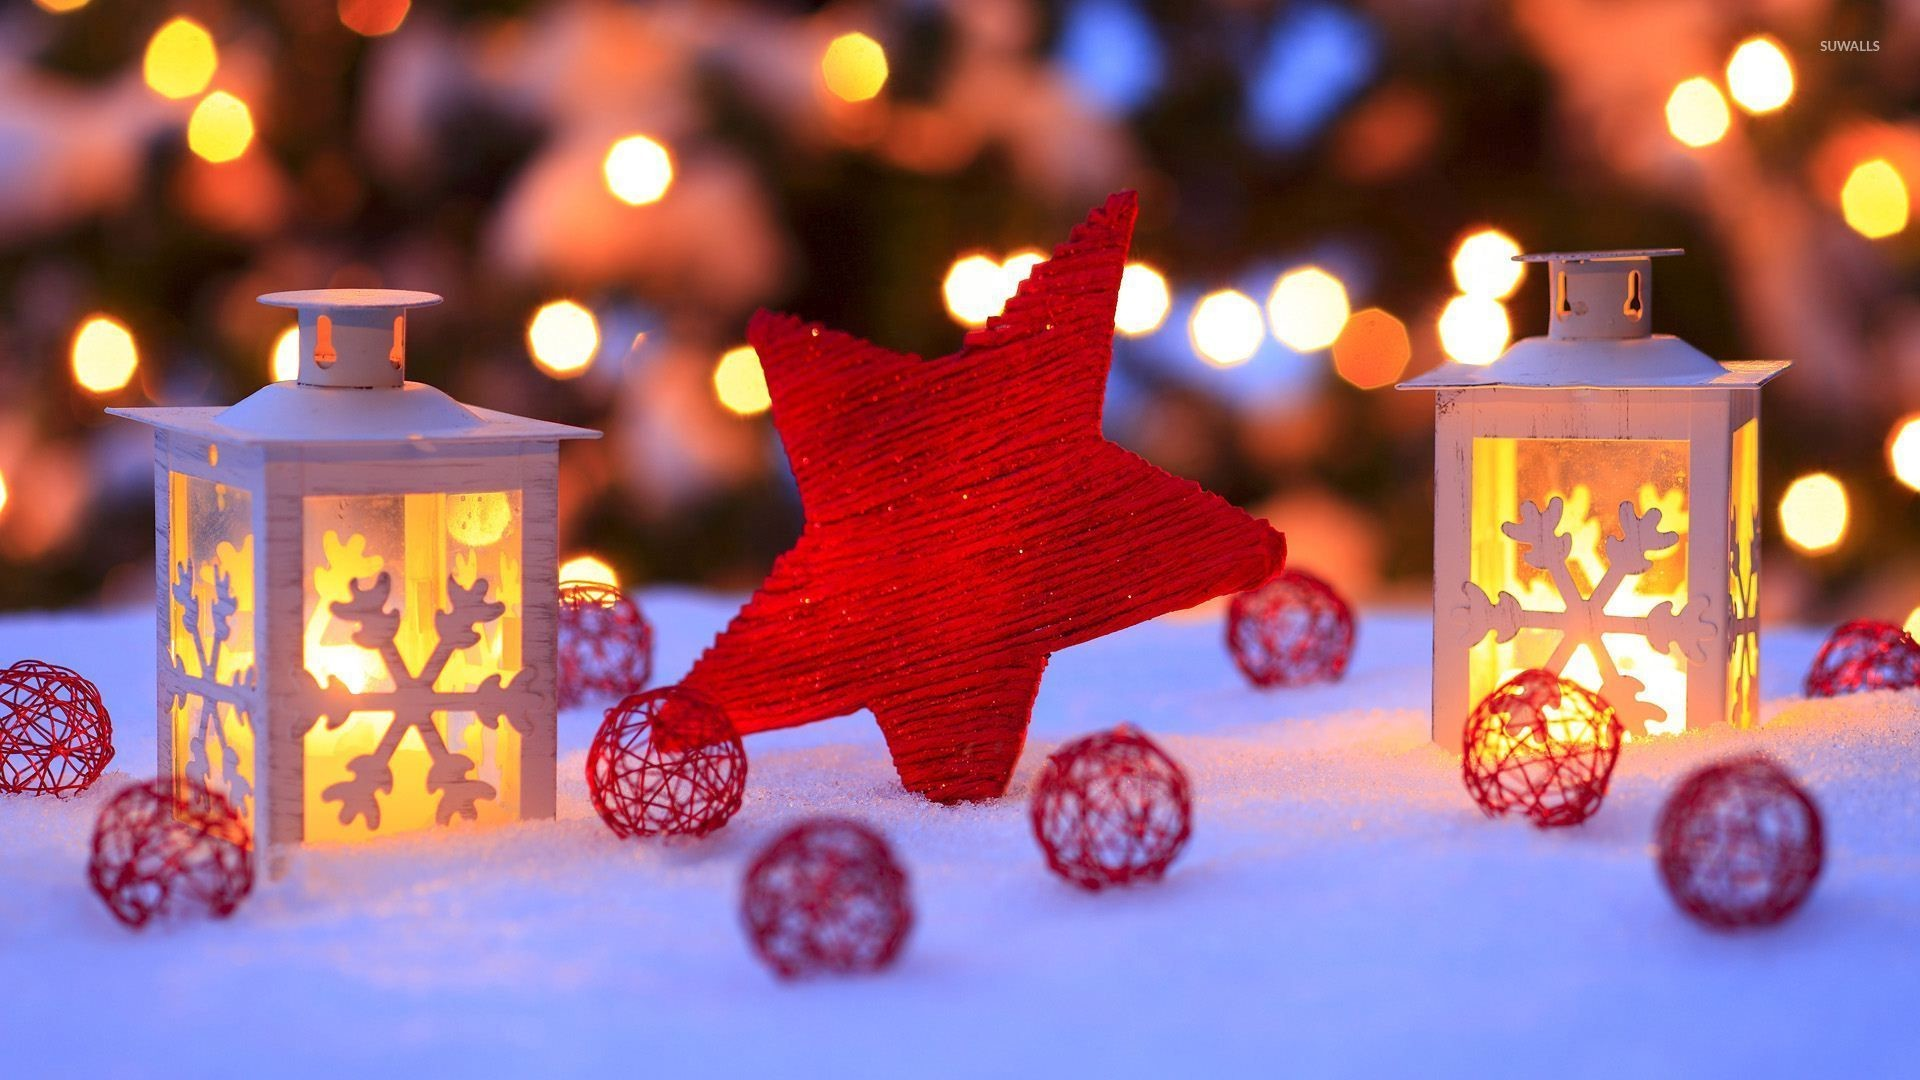 1920x1080 Red star in the snow by the candles wallpaper · Holidays · Christmas · Star  · Candle ·  ...